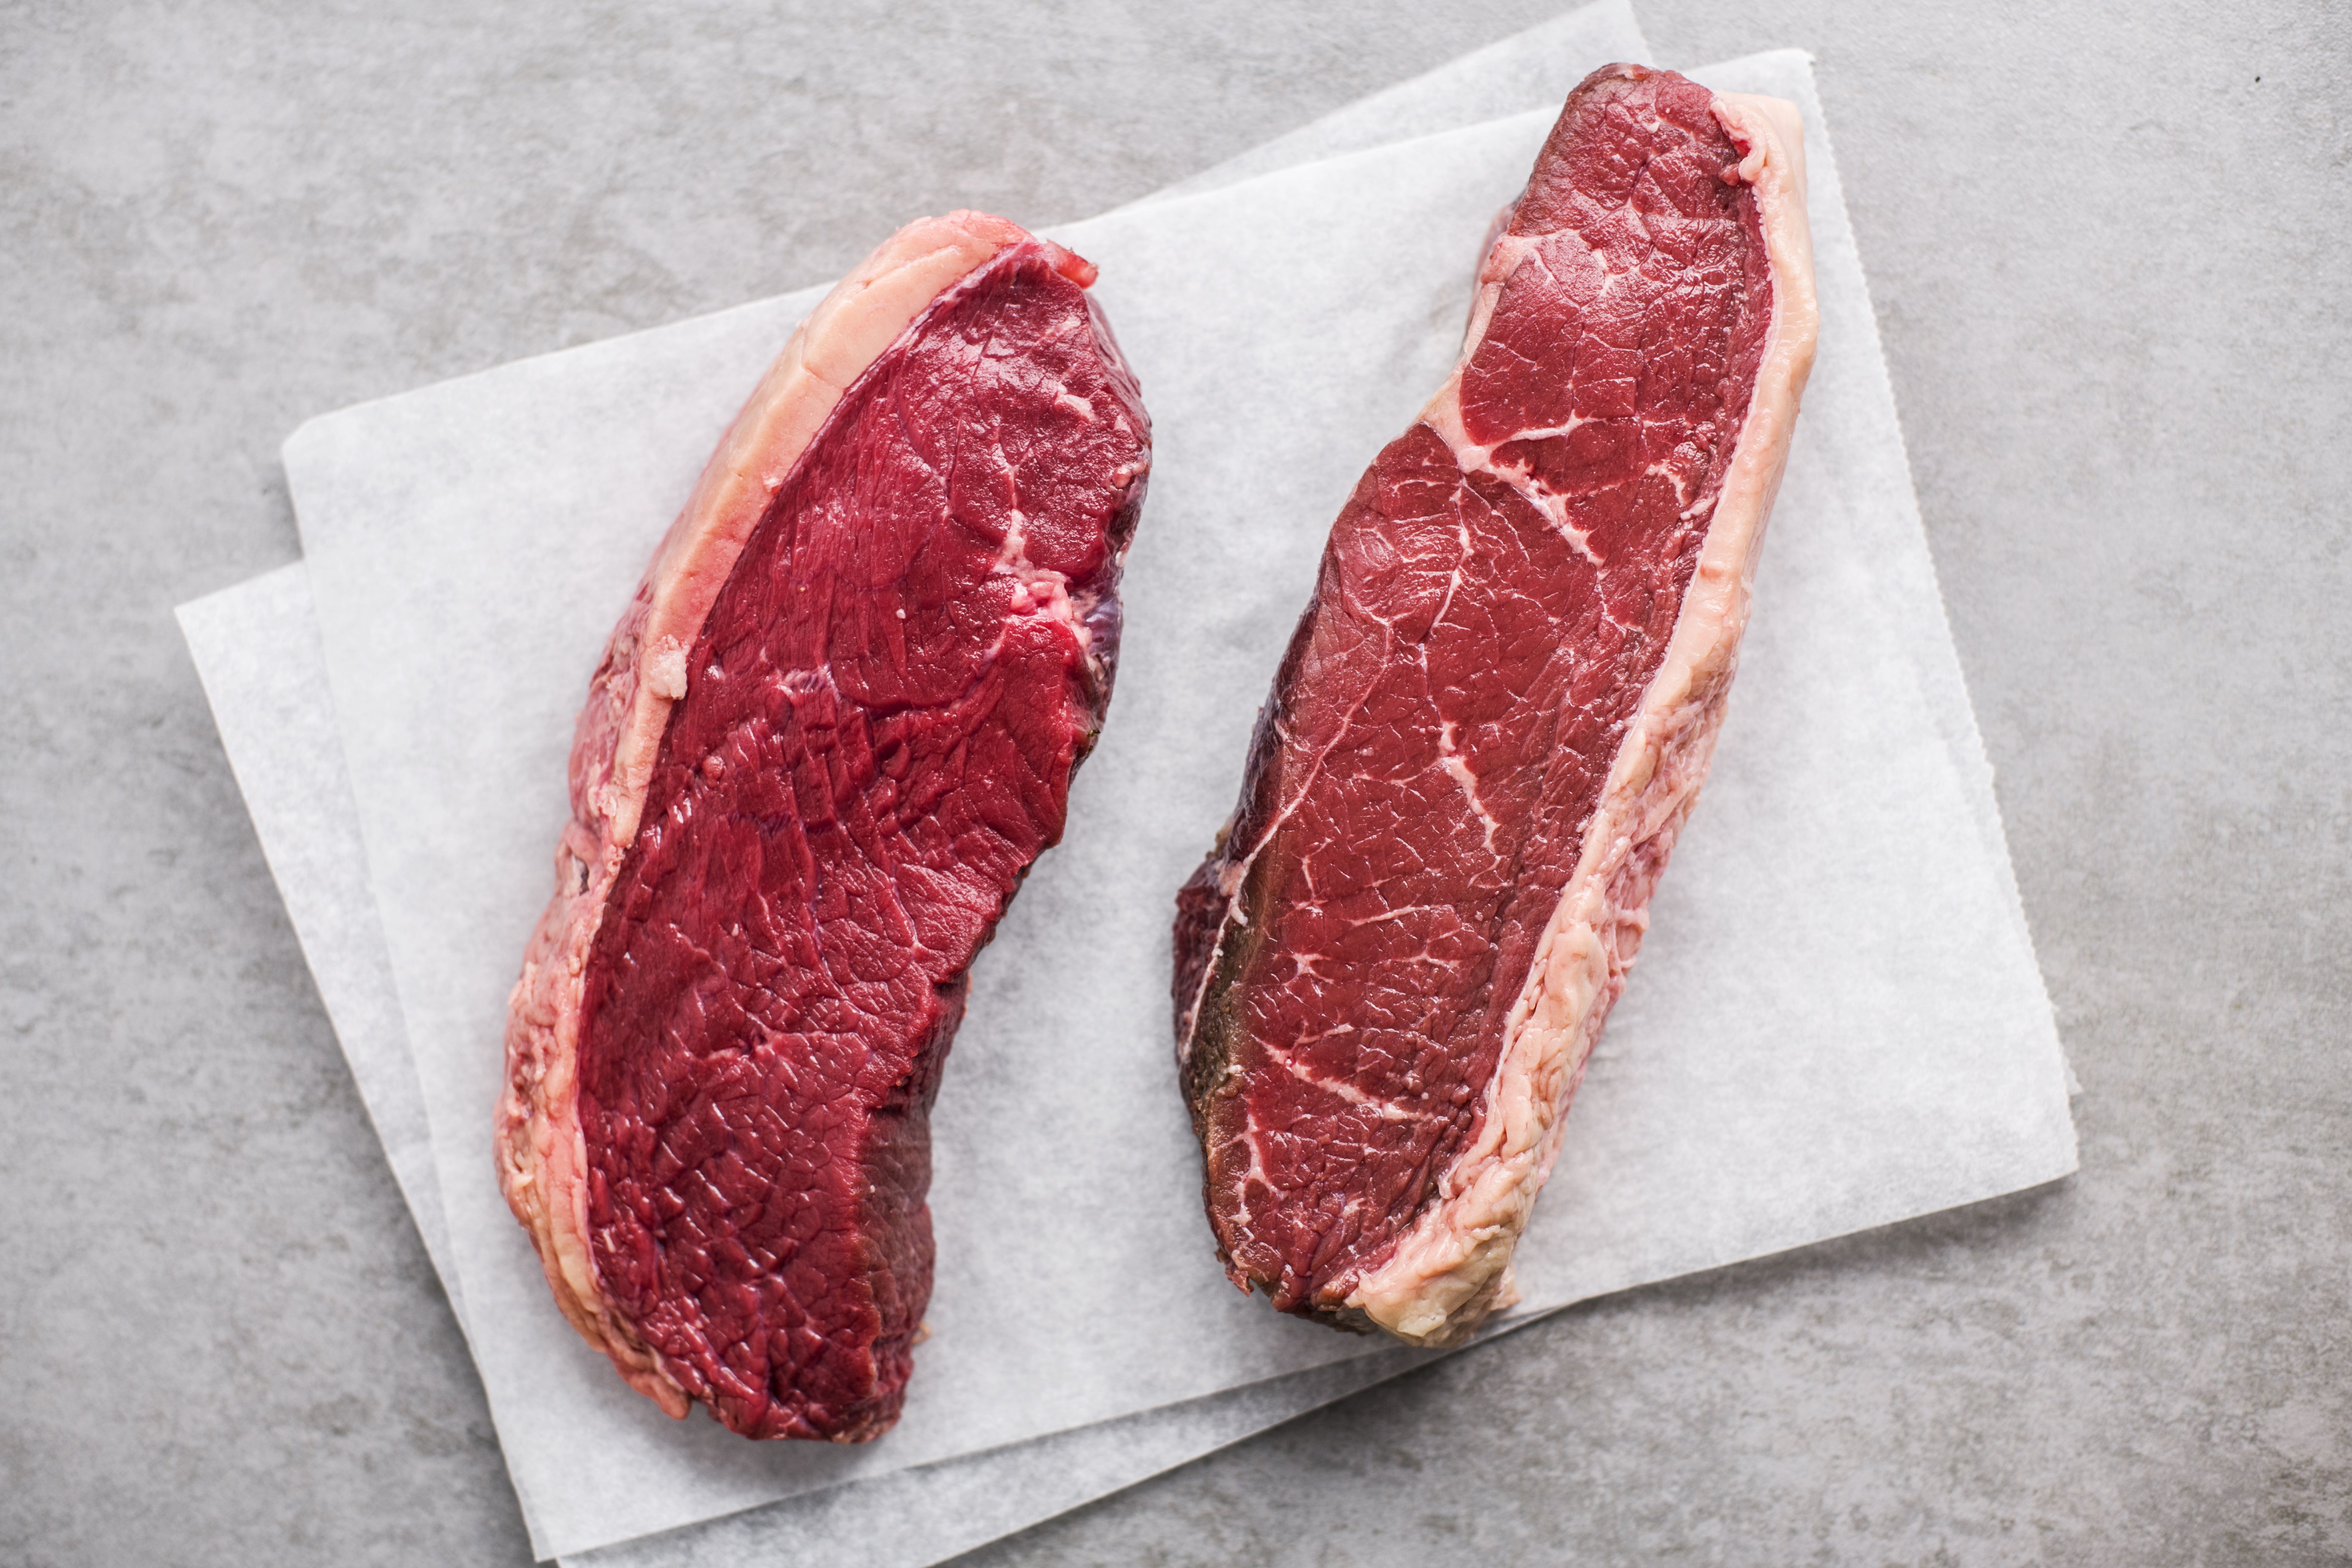 Steaks sitting out on the countertop